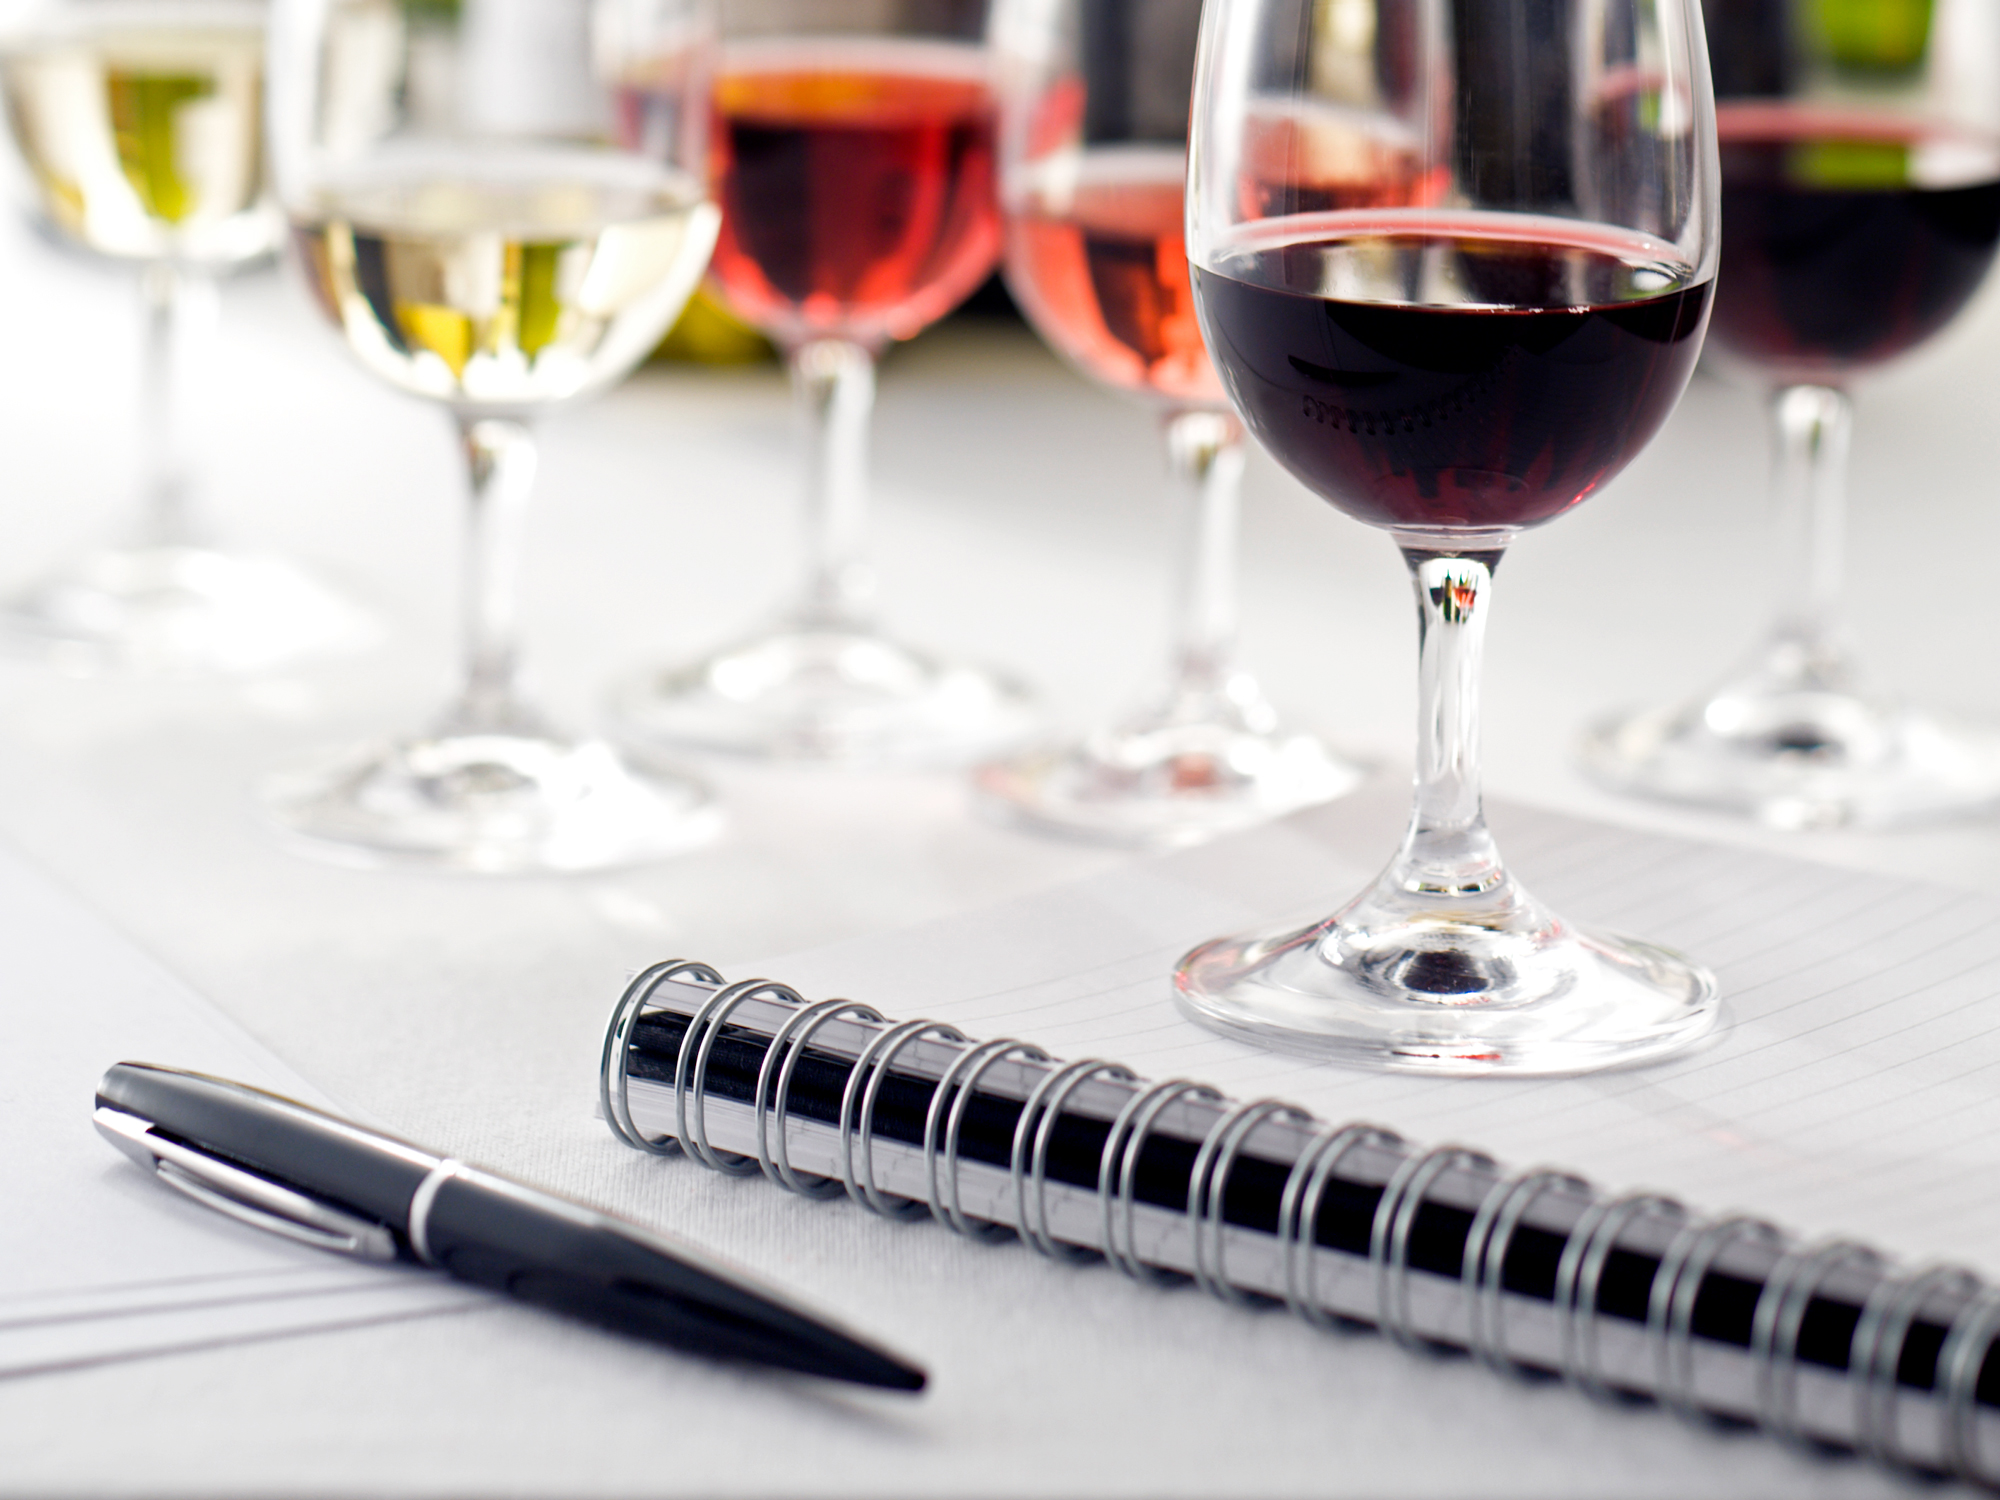 A note book, pen, and tasting glasses of wine